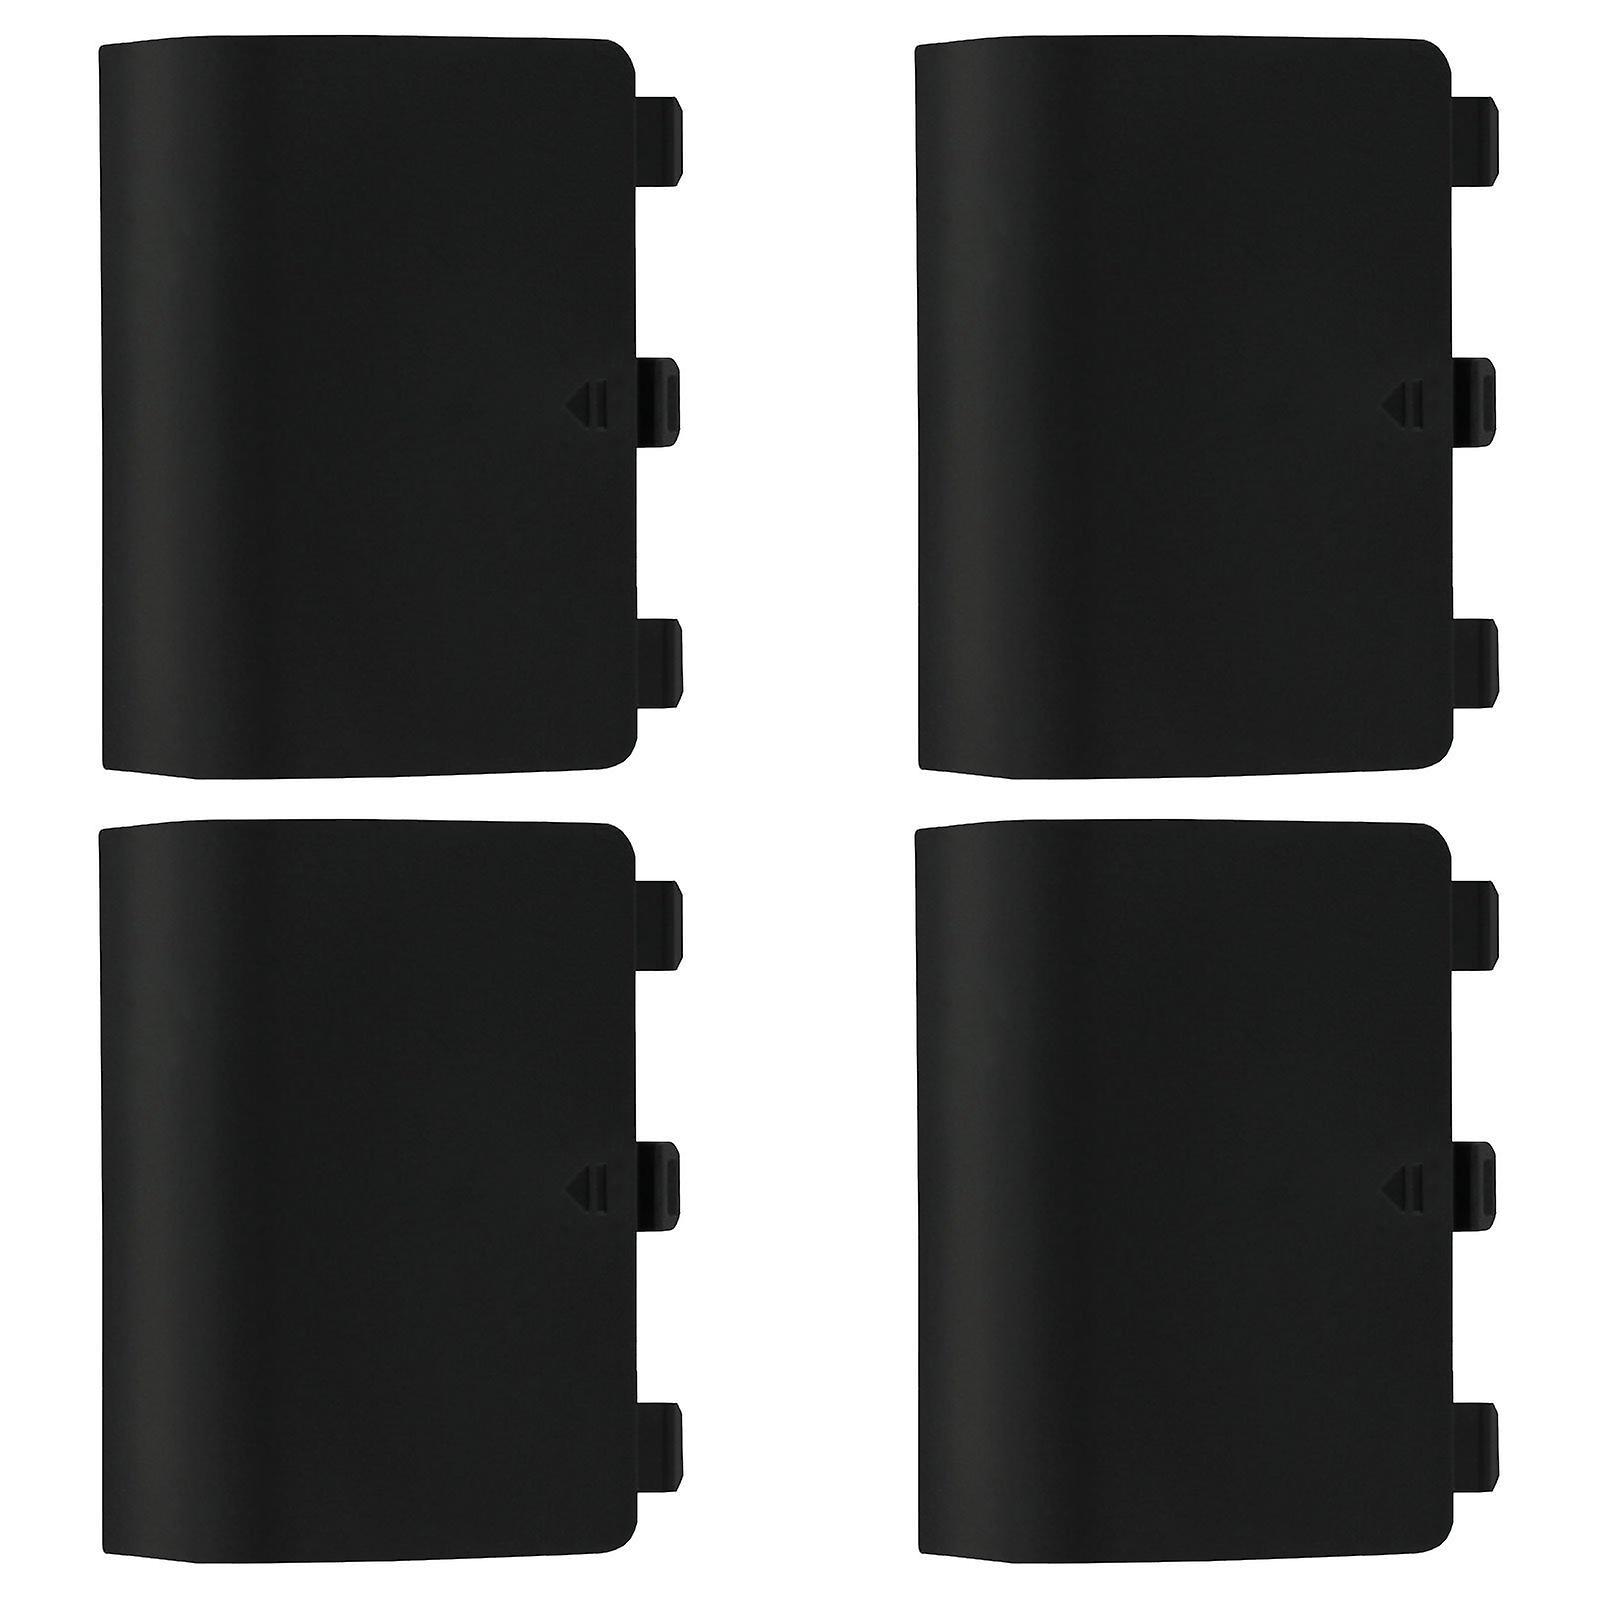 Replacement battery back cover holder for black microsoft xbox one controllers ? 4 pack black